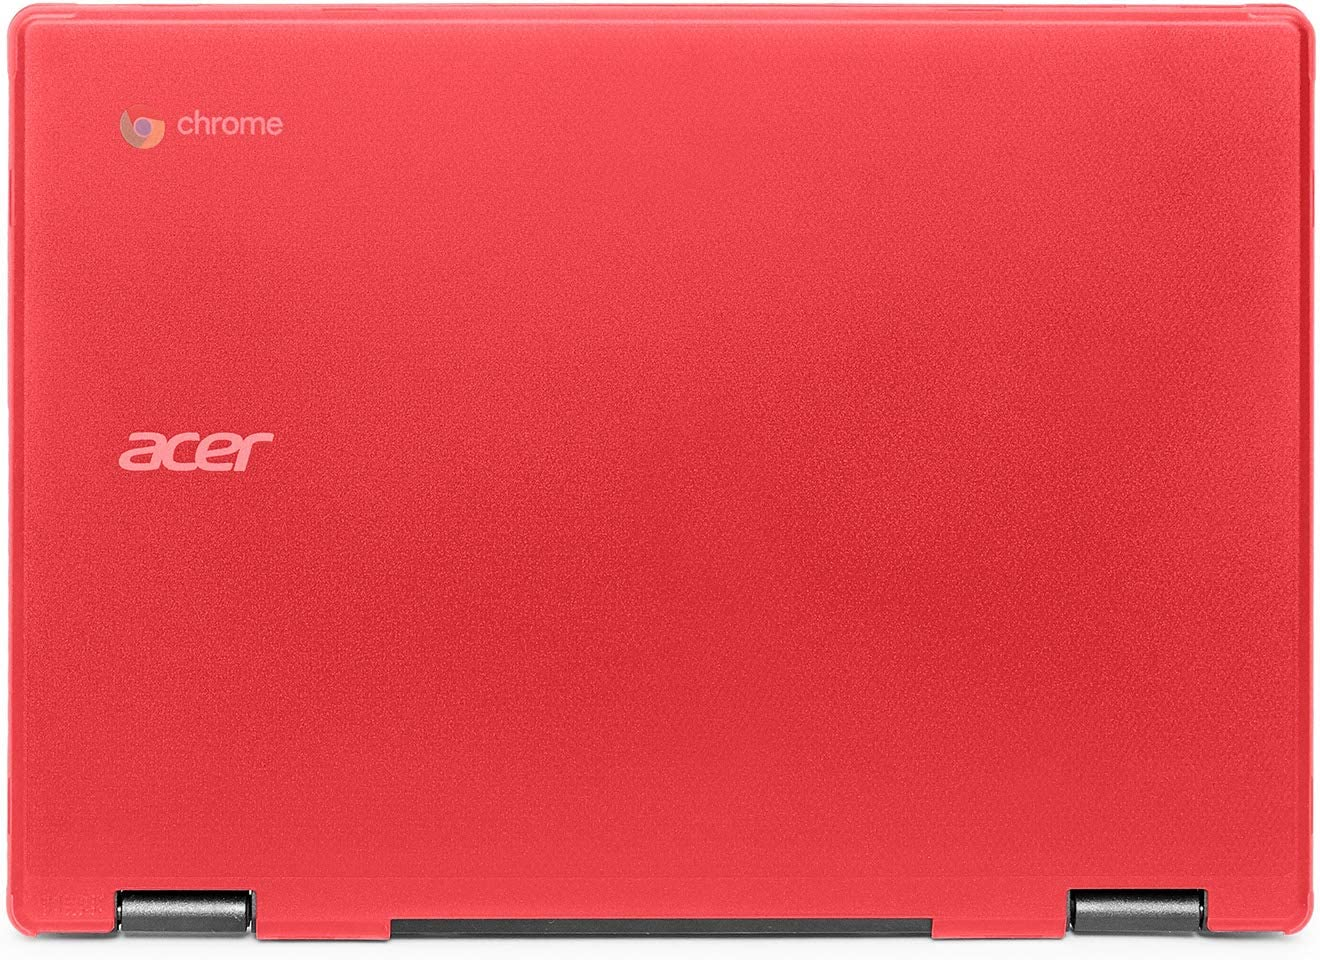 "mCover Hard Shell Case for 2019 11.6"" Acer Chromebook Spin 511 R752T Series (NOT Compatible with Acer C11 C720 / C721 / C730 / C731 / C732 / C771 / C740 / CB3-111 / CB3-131,etc) (Red)"